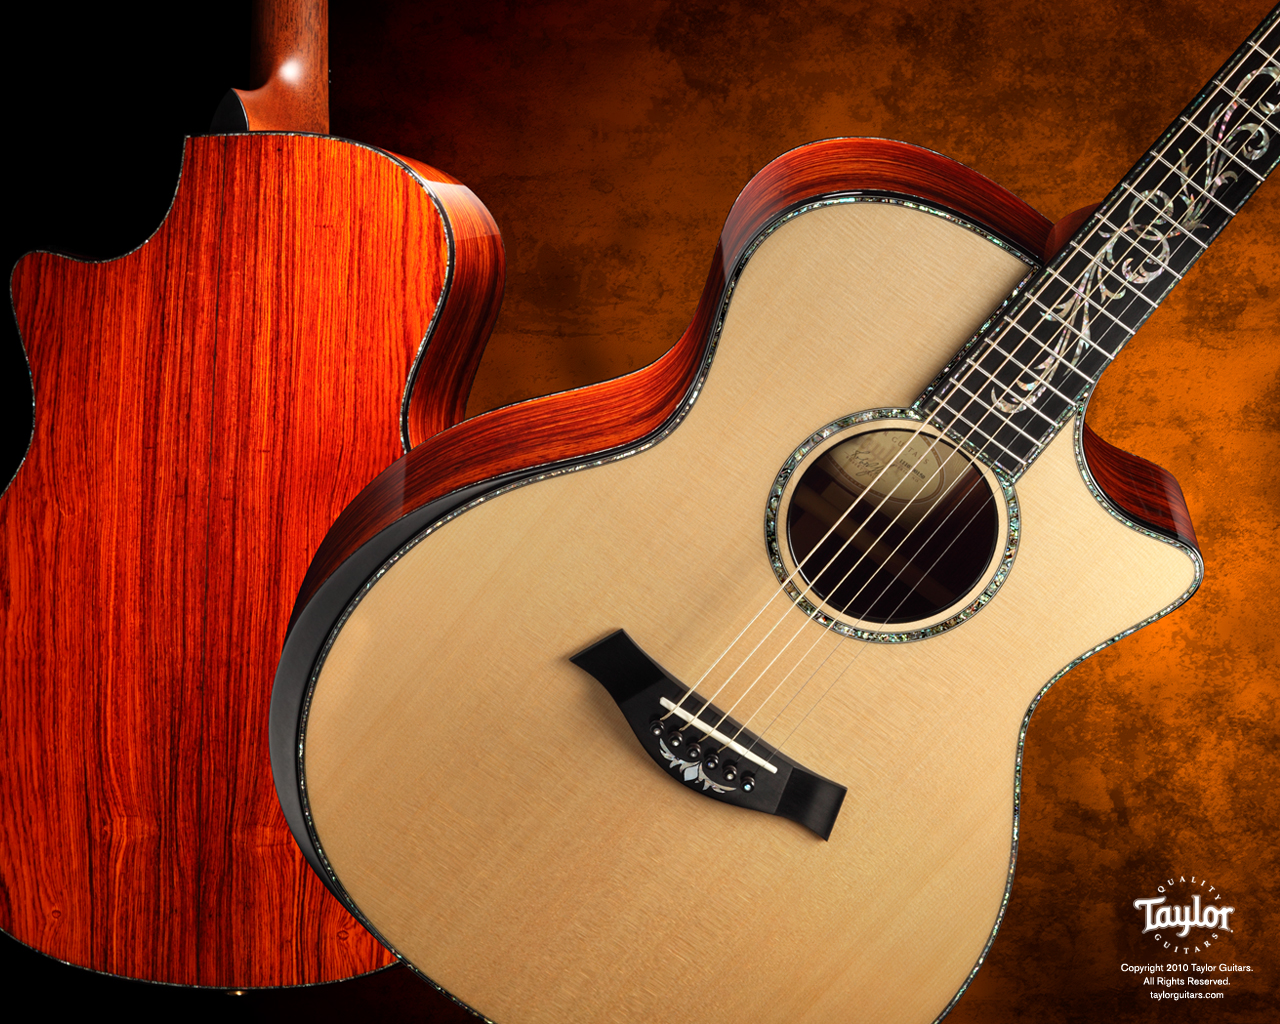 Martin Guitar Desktop Wallpaper - WallpaperSafari